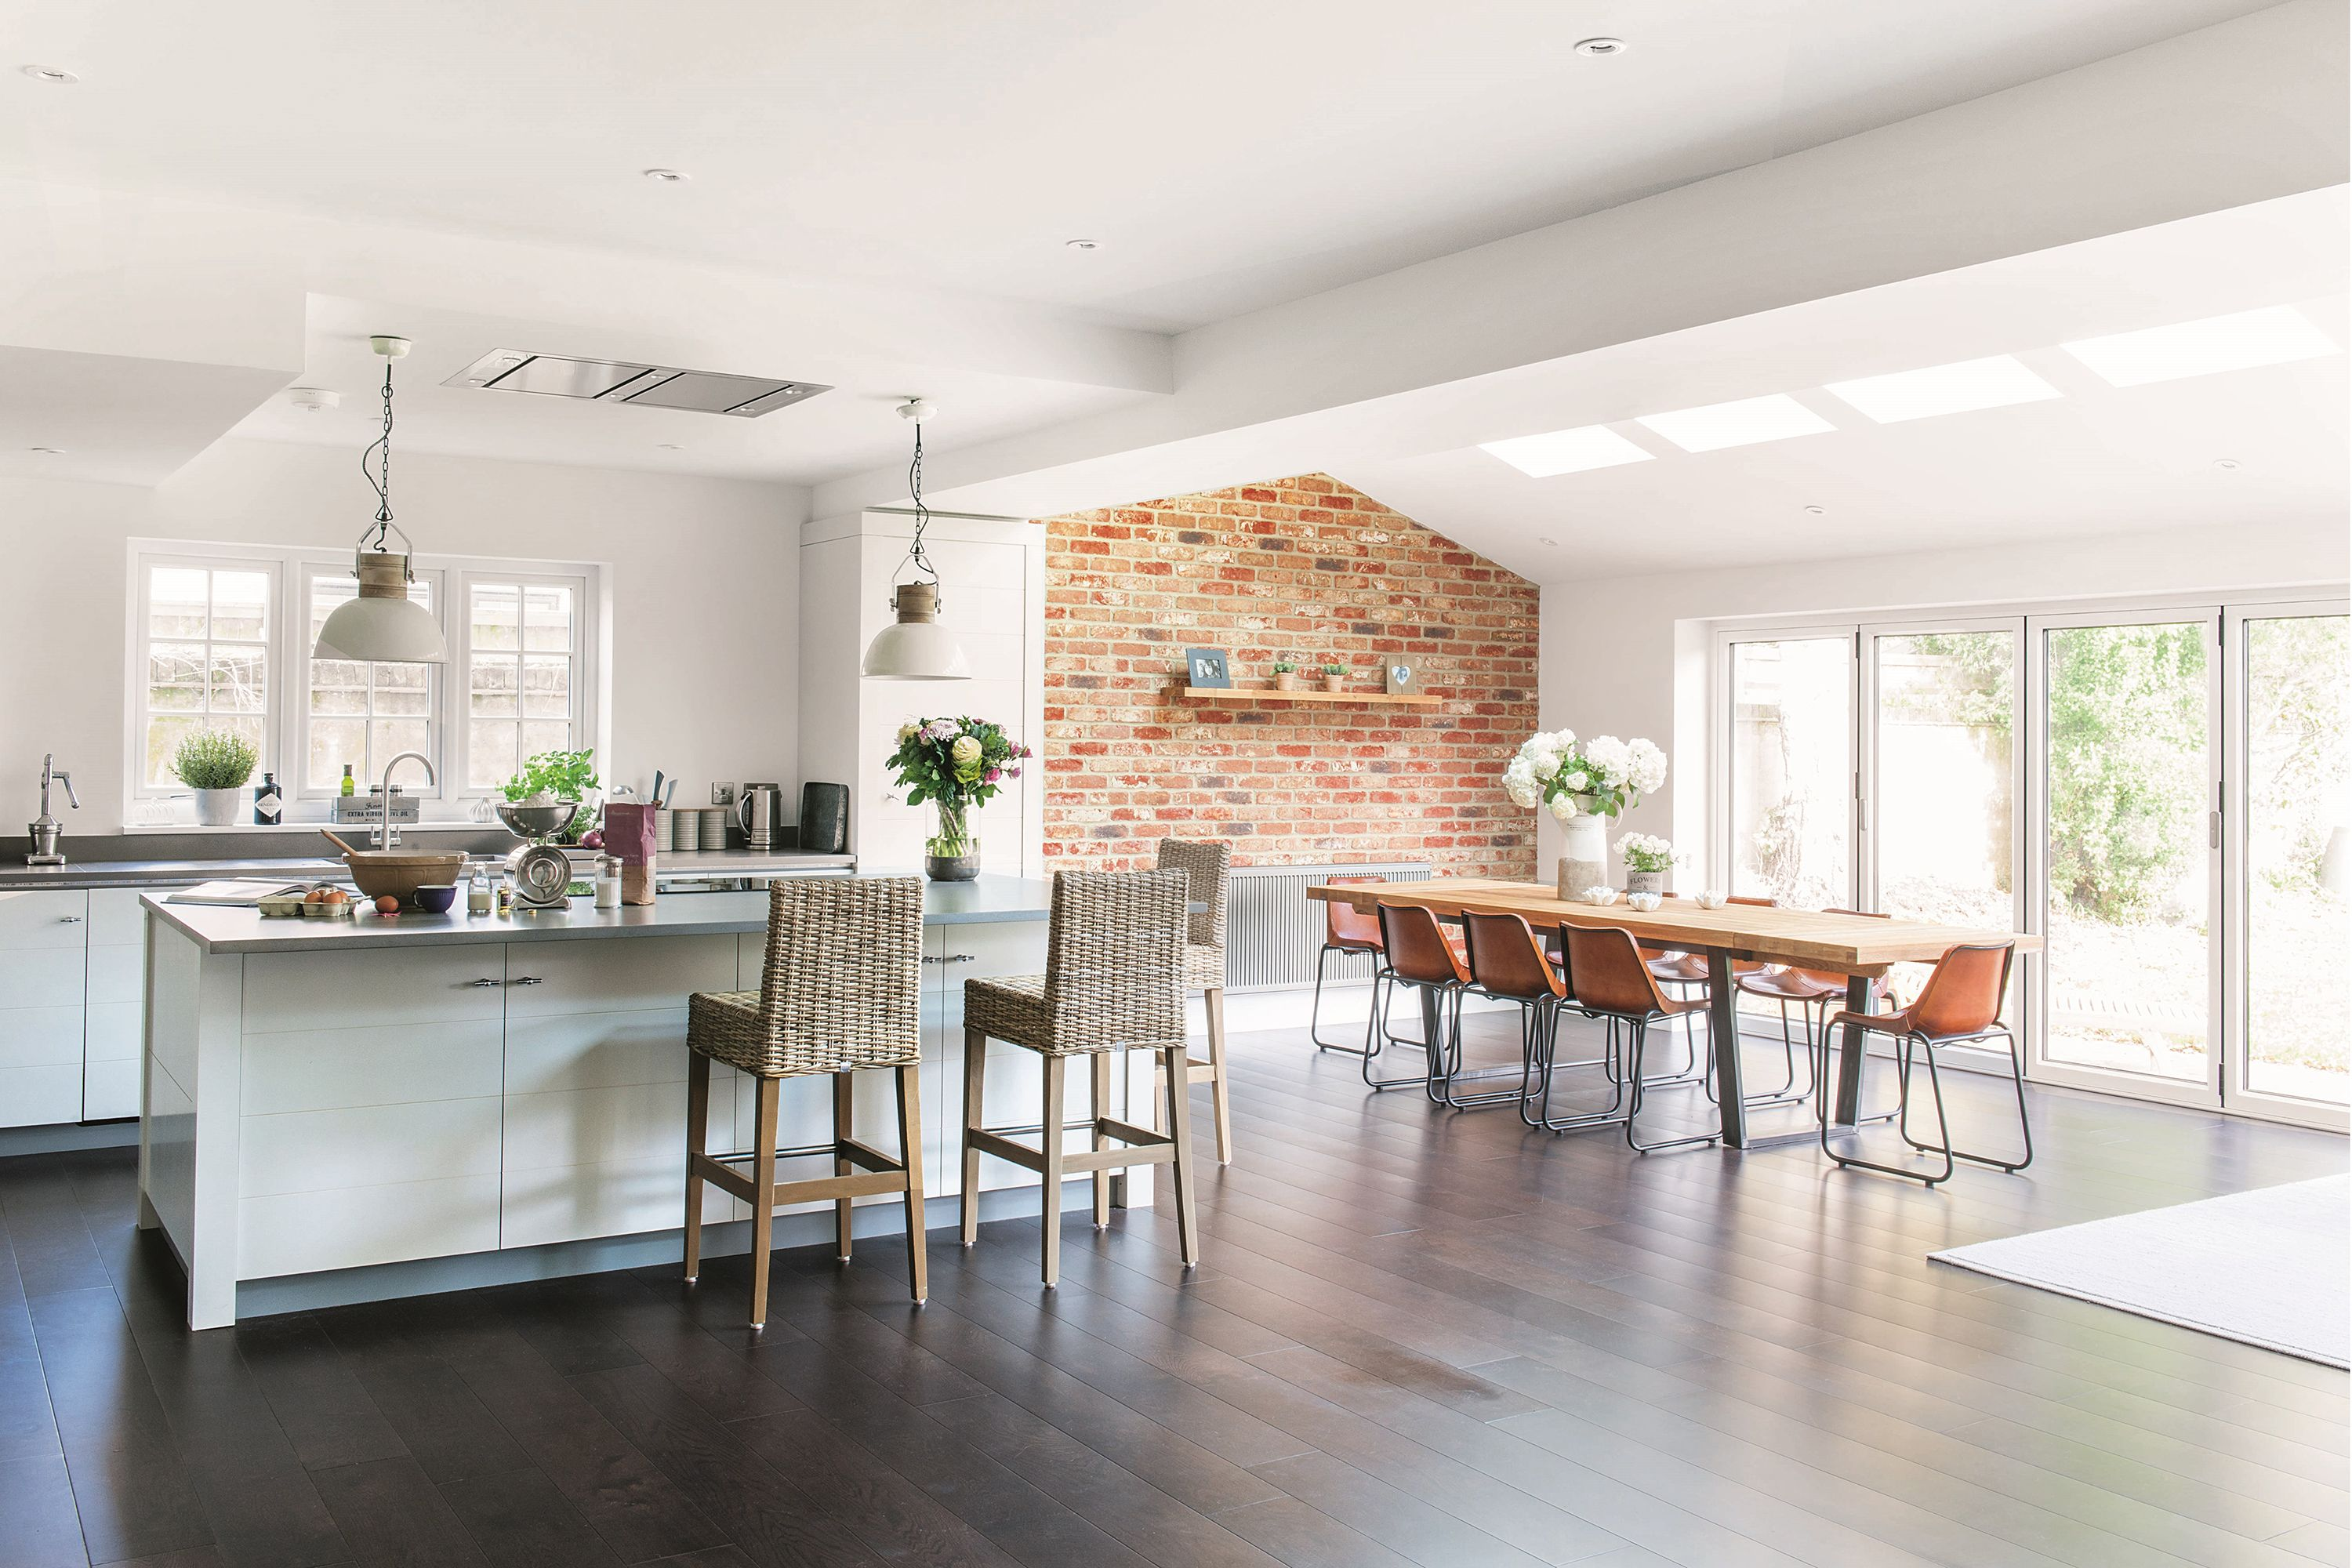 Planning a kitchen extension